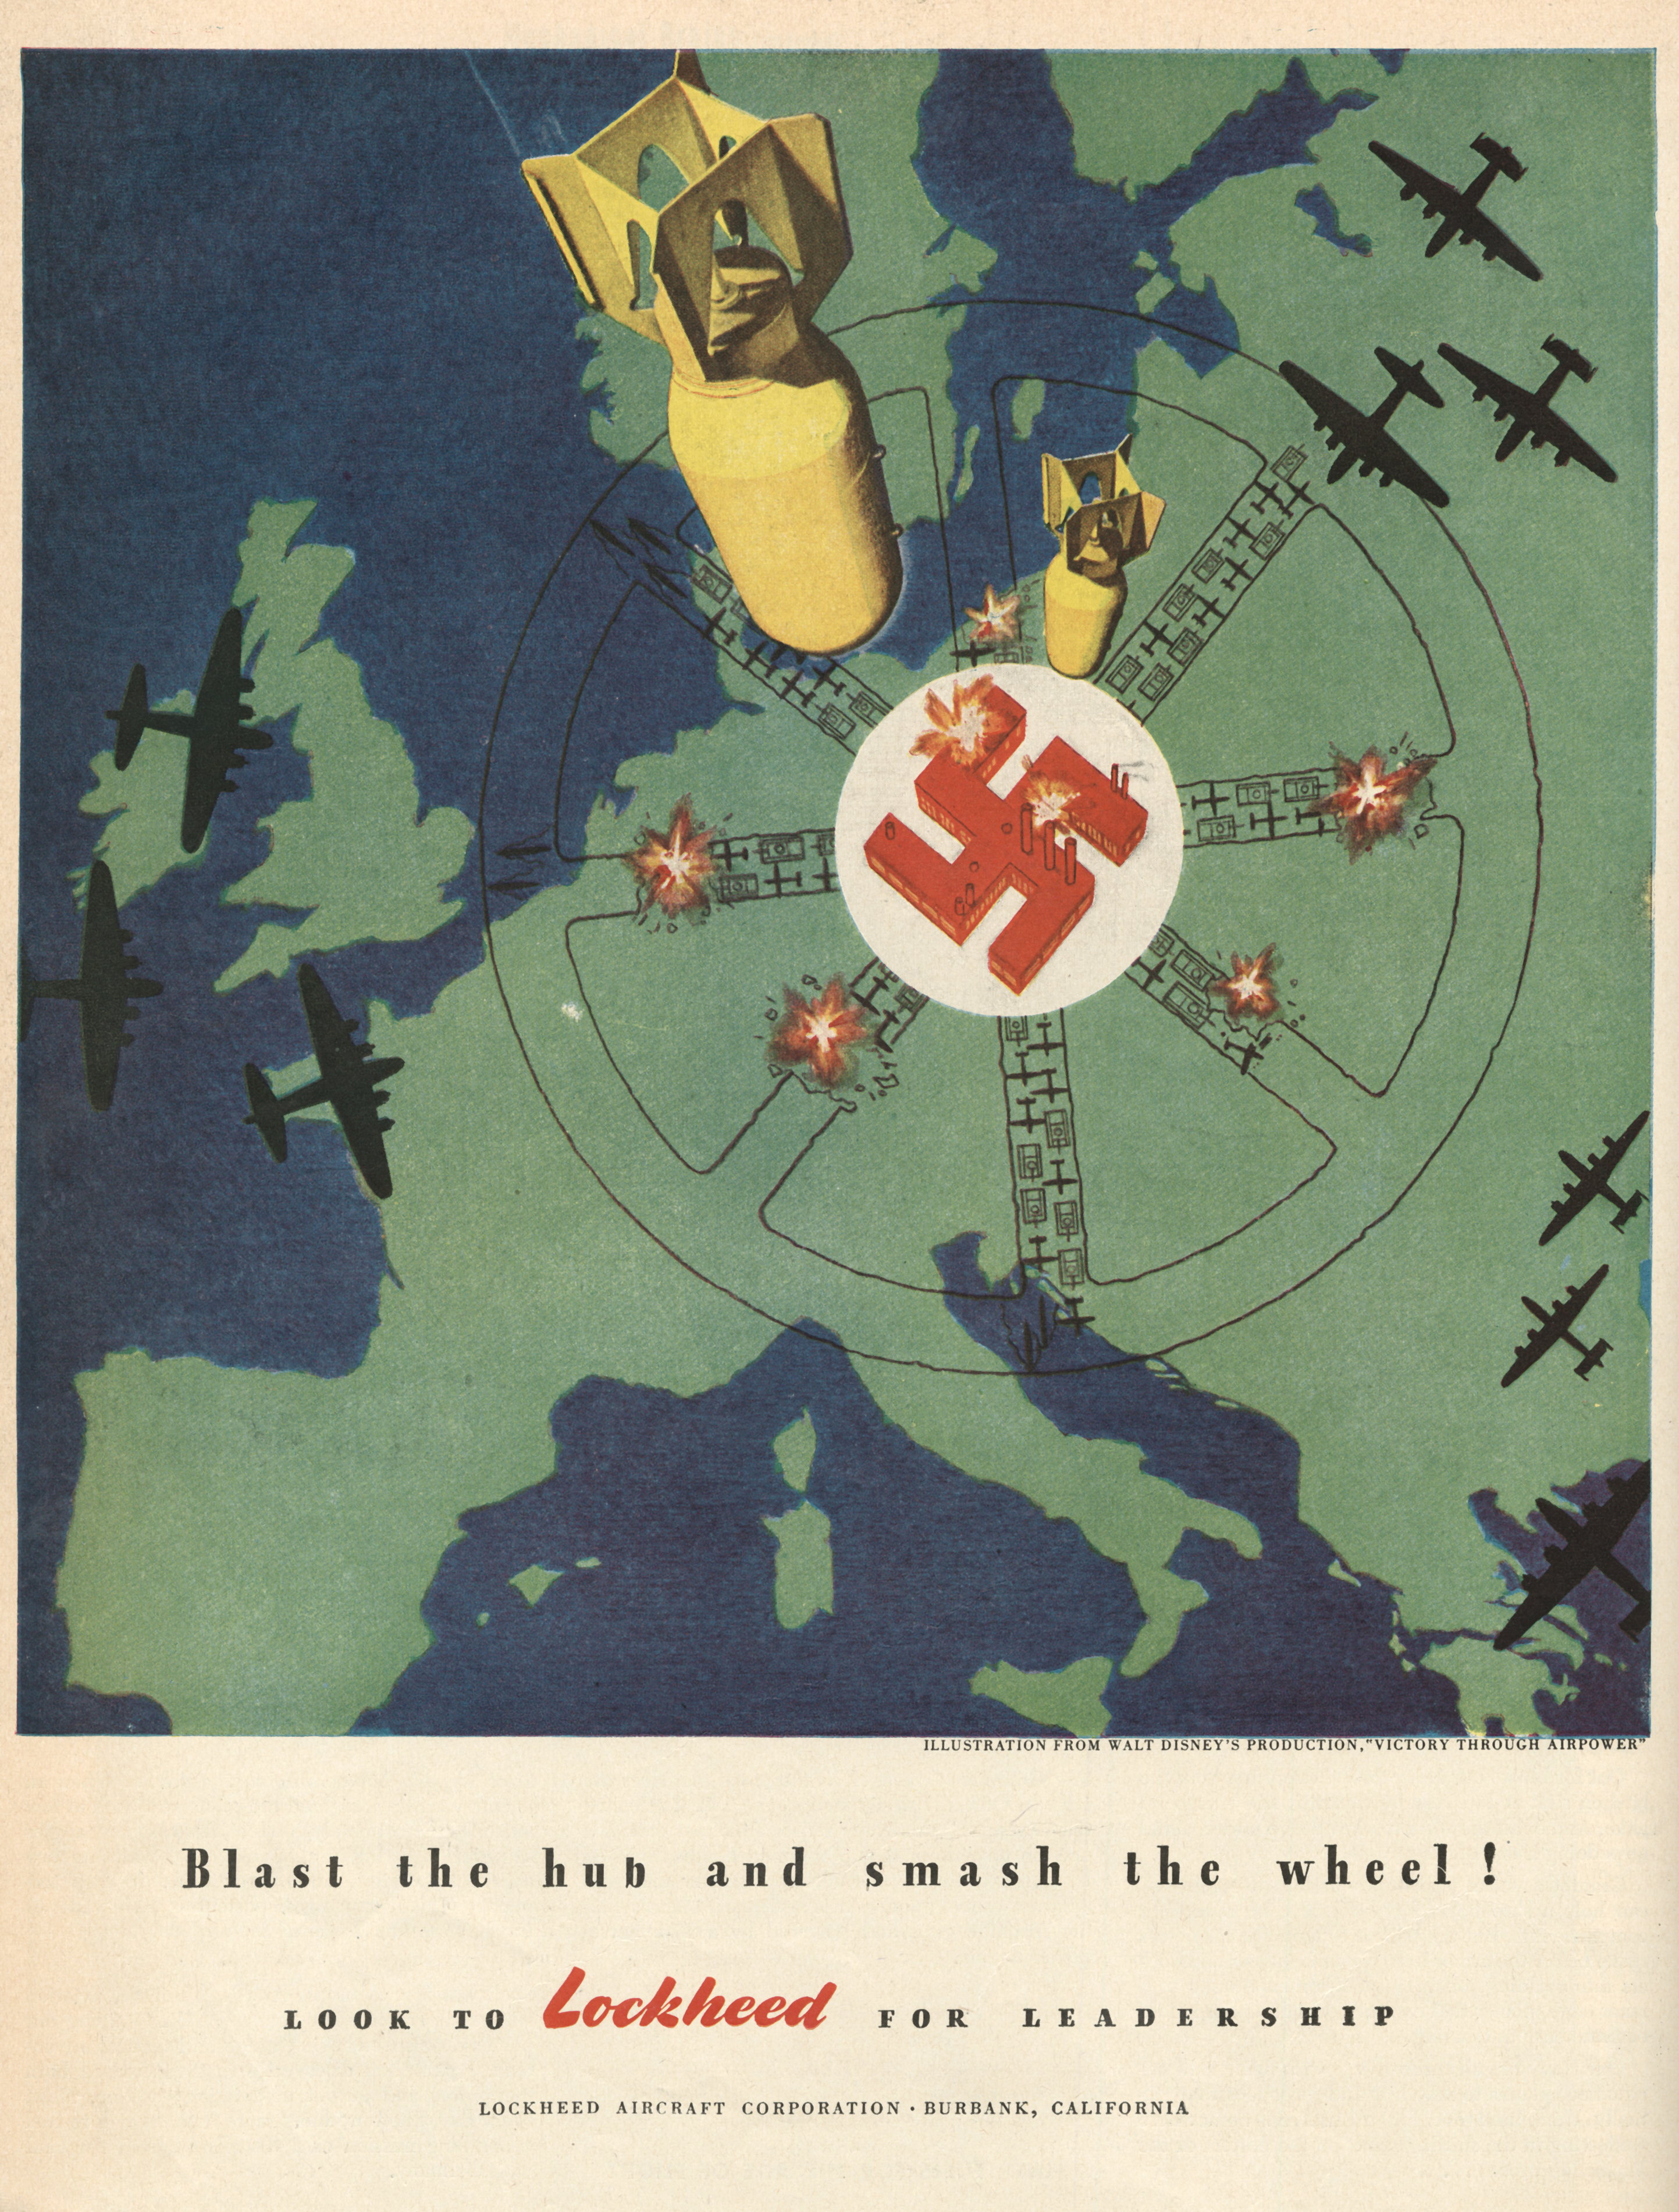 Lockheed Aircraft Corporation - published in Life - January 24, 1944